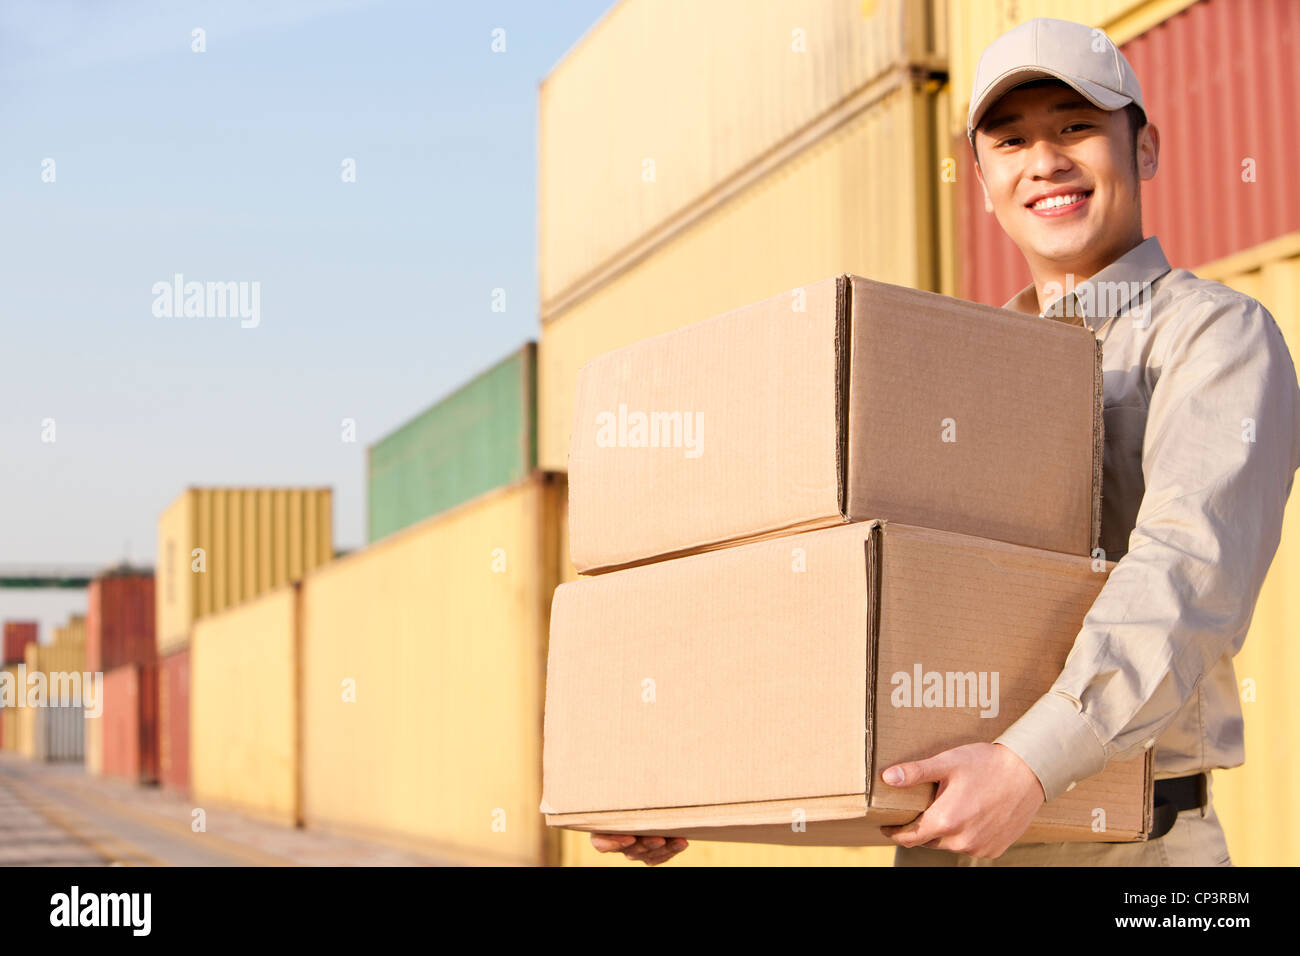 shipping industry worker carrying cardboard boxes - Stock Image